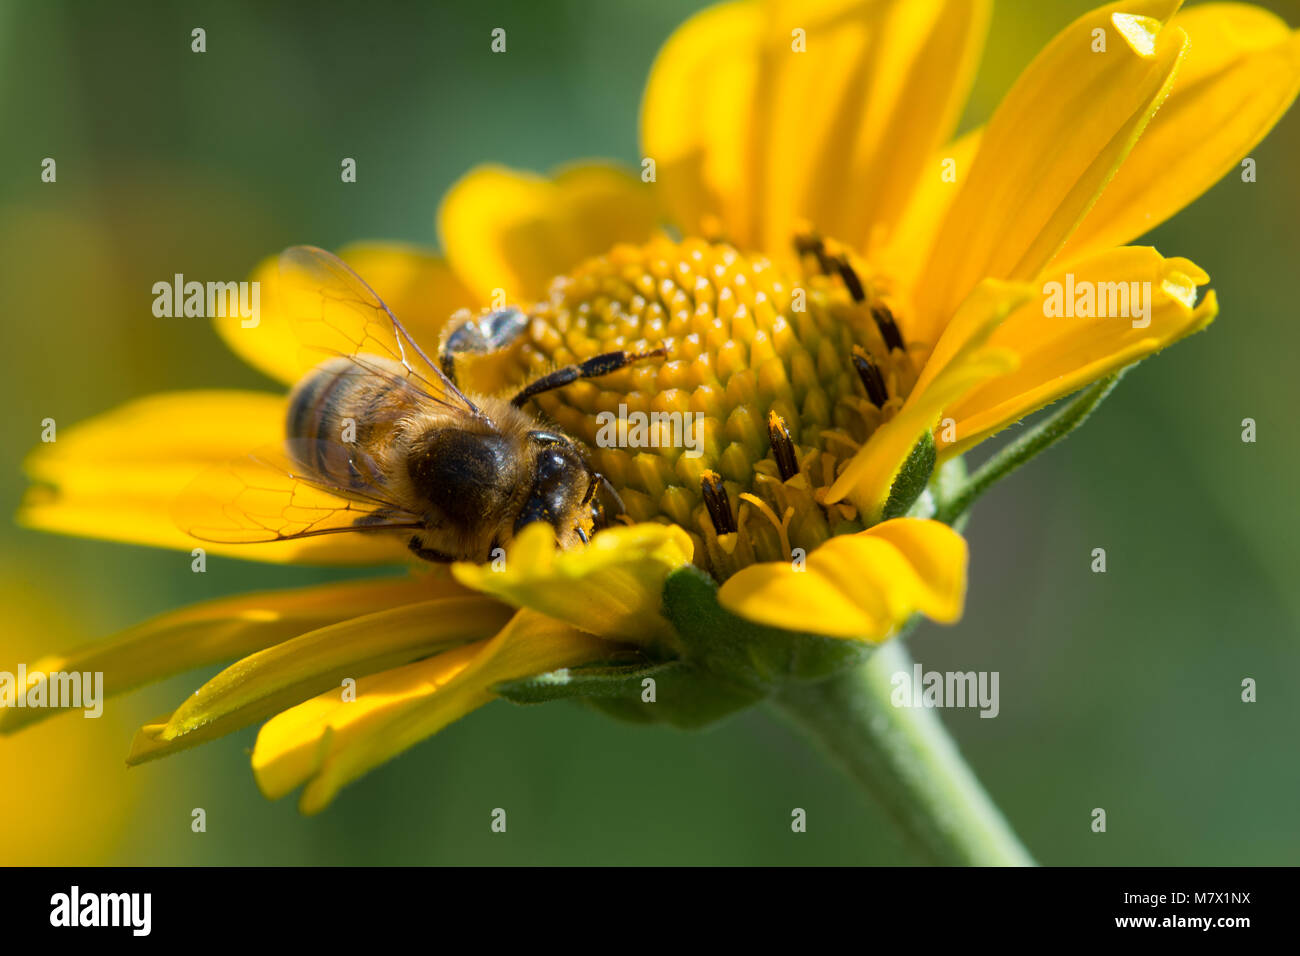 close up macro of western honey bee apis mellifera on yellow  flower collecting nectar - Stock Image